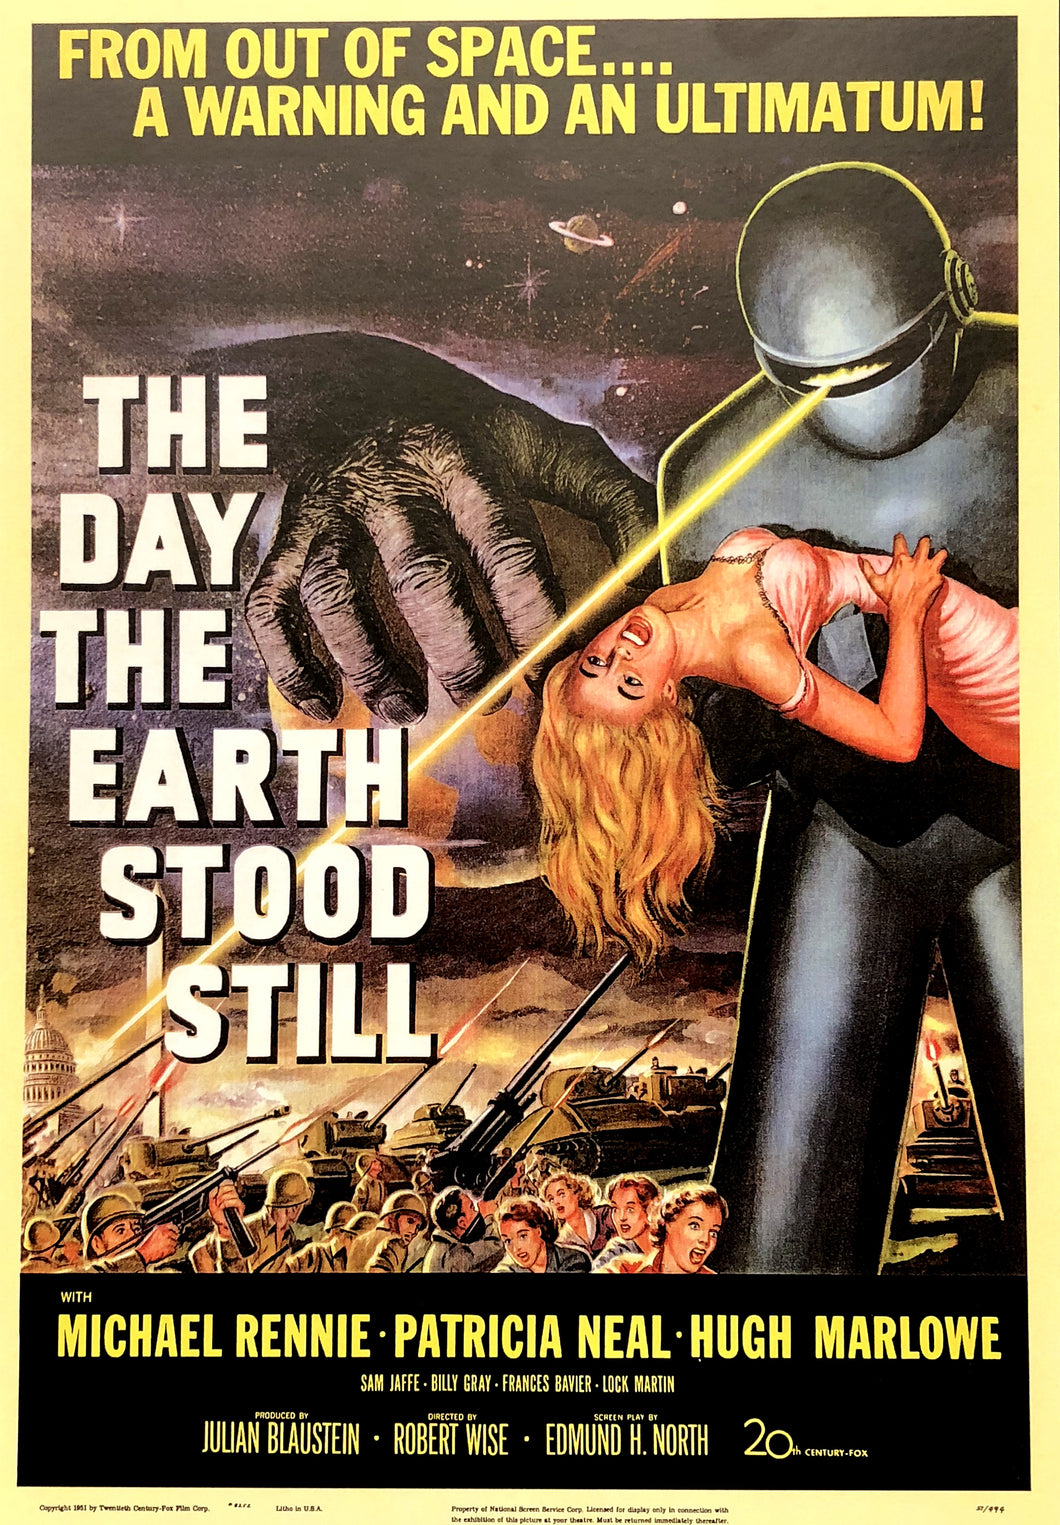 The Day the Earth Stood Still - Poster